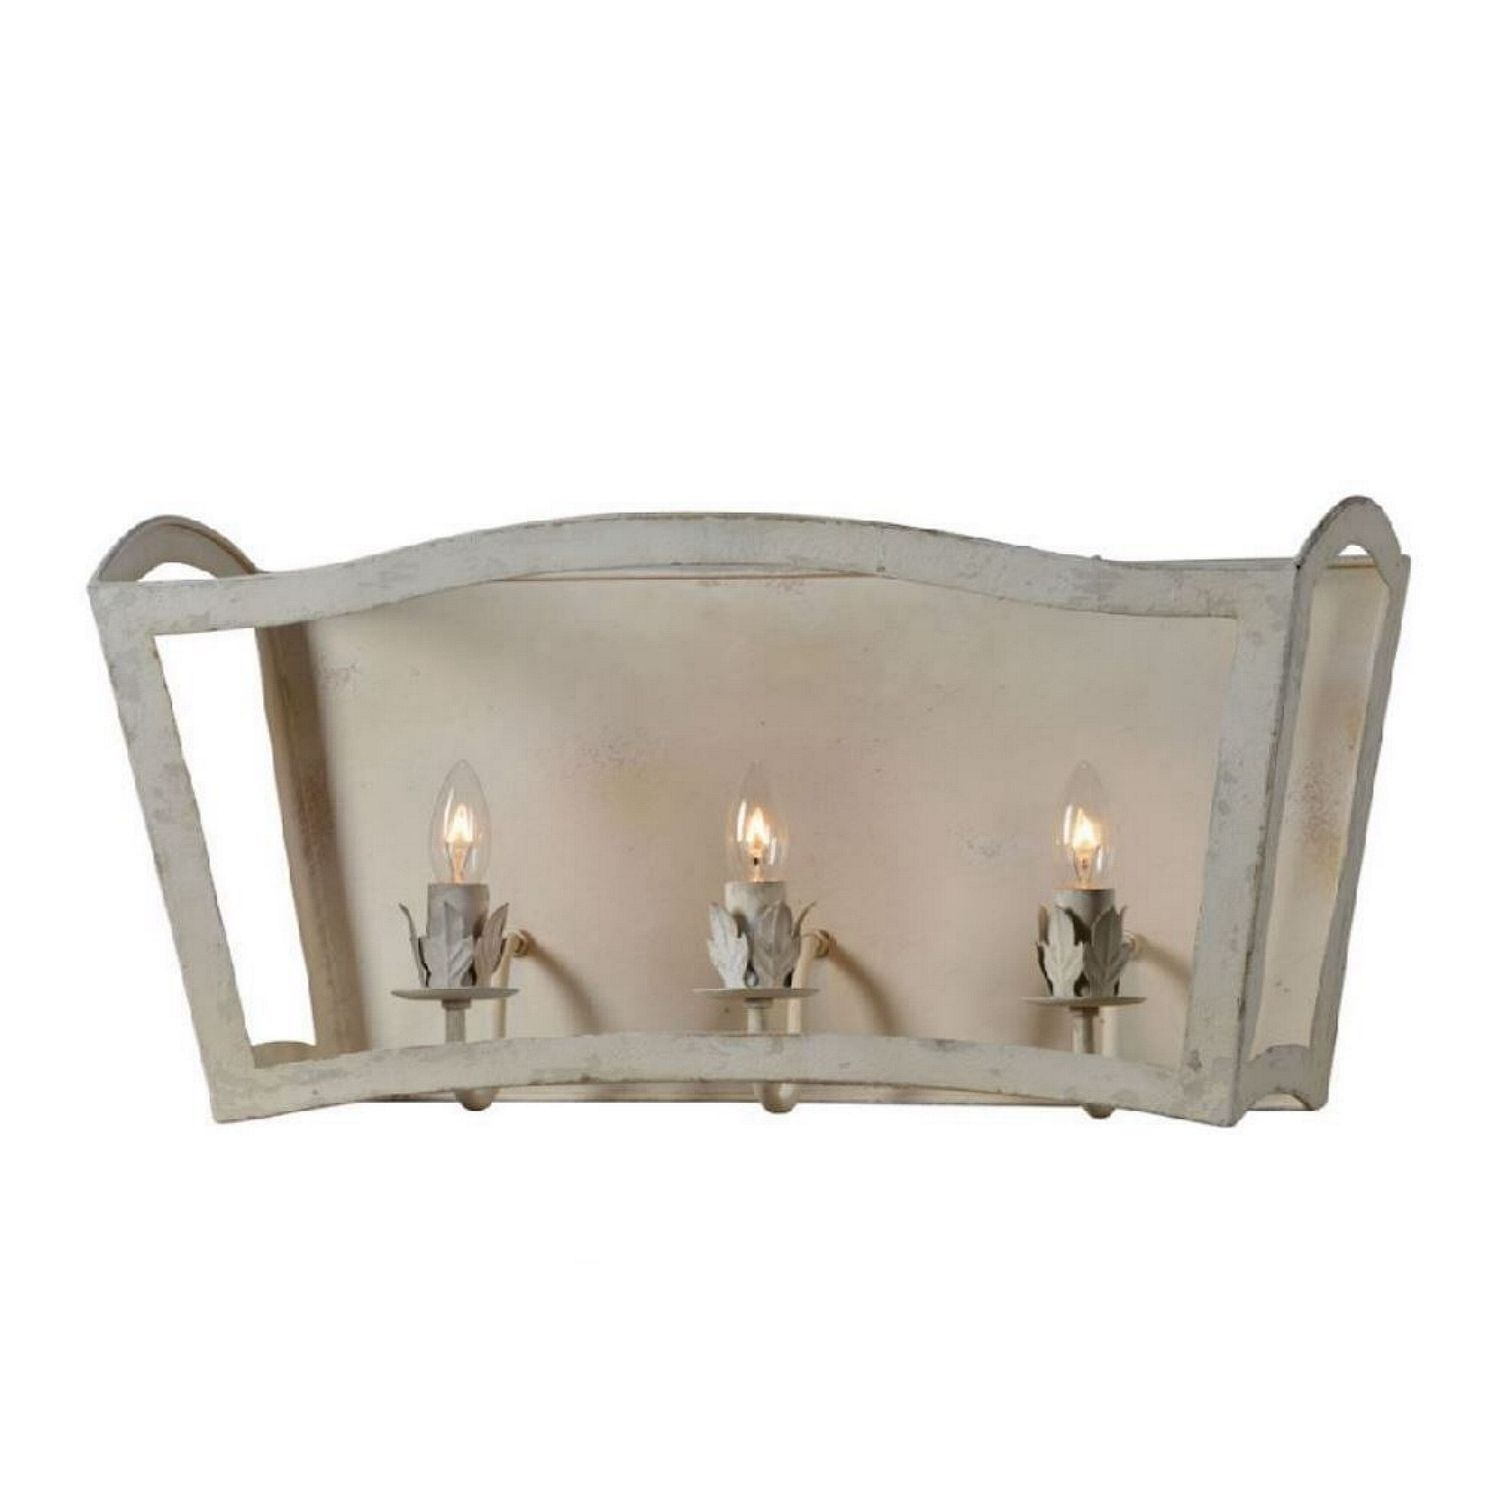 Wall Sconce Light Fixture The Jennifer Aged Off White Shabby Country Chic With Images Hallway Light Fixtures Sconce Light Fixtures Wall Sconce Lighting